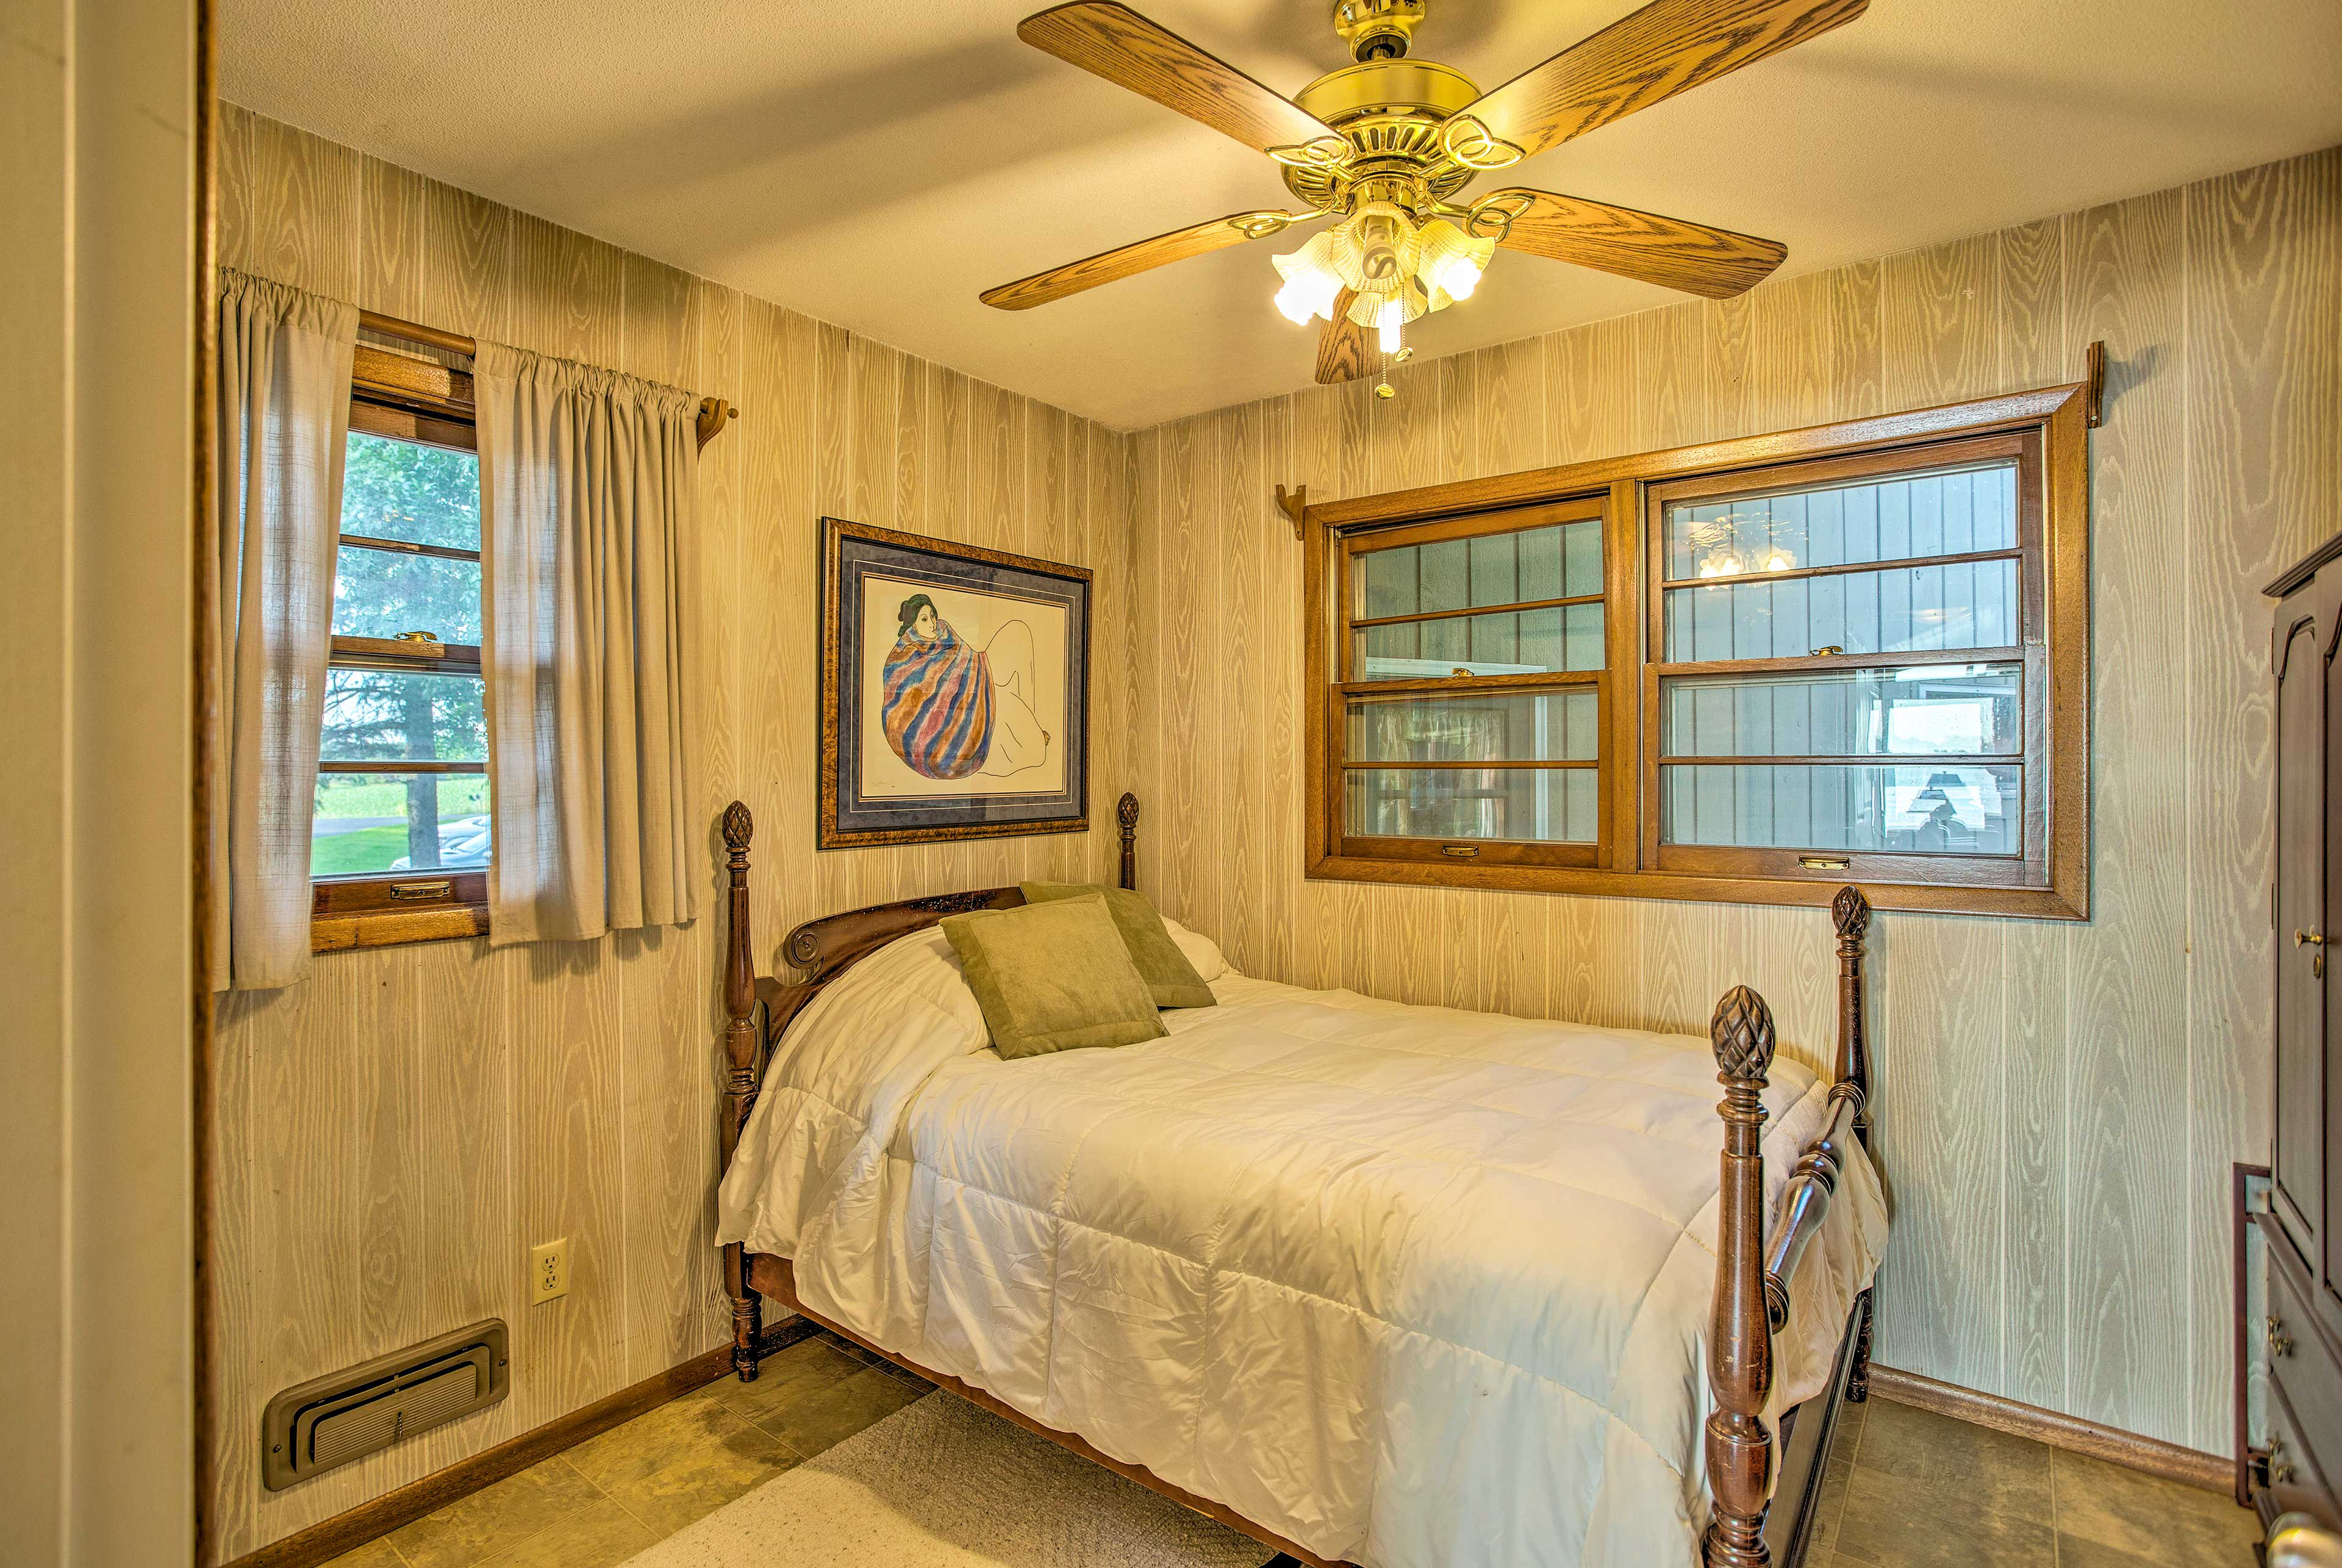 This full bed is located in the bedroom located just off of the living room.